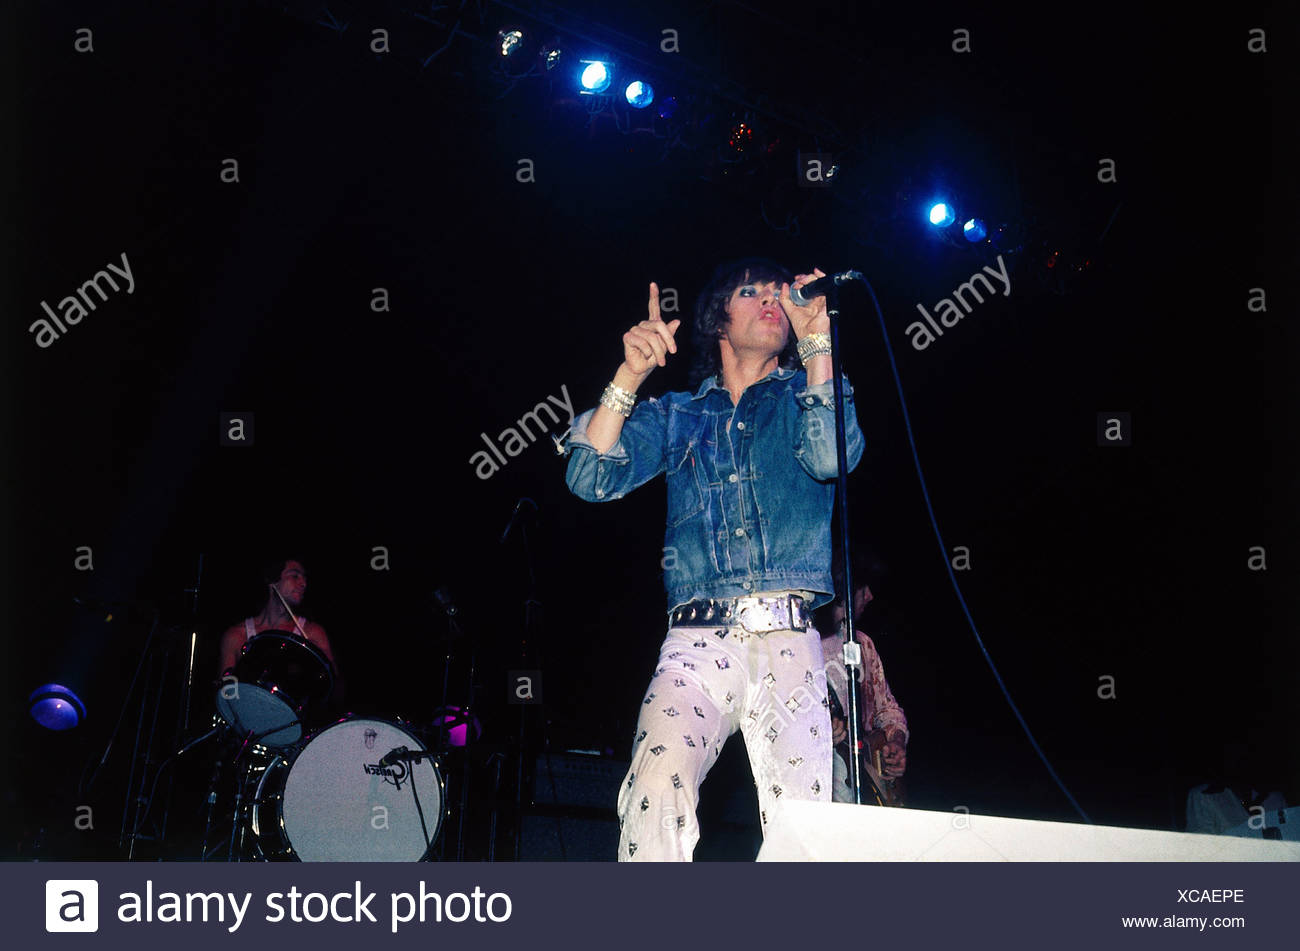 Rolling Stones, British rock group, Mick Jagger and Charlie Watts during a concert, 1970s, jeans jacket, musicians, band, stage, - Stock Image